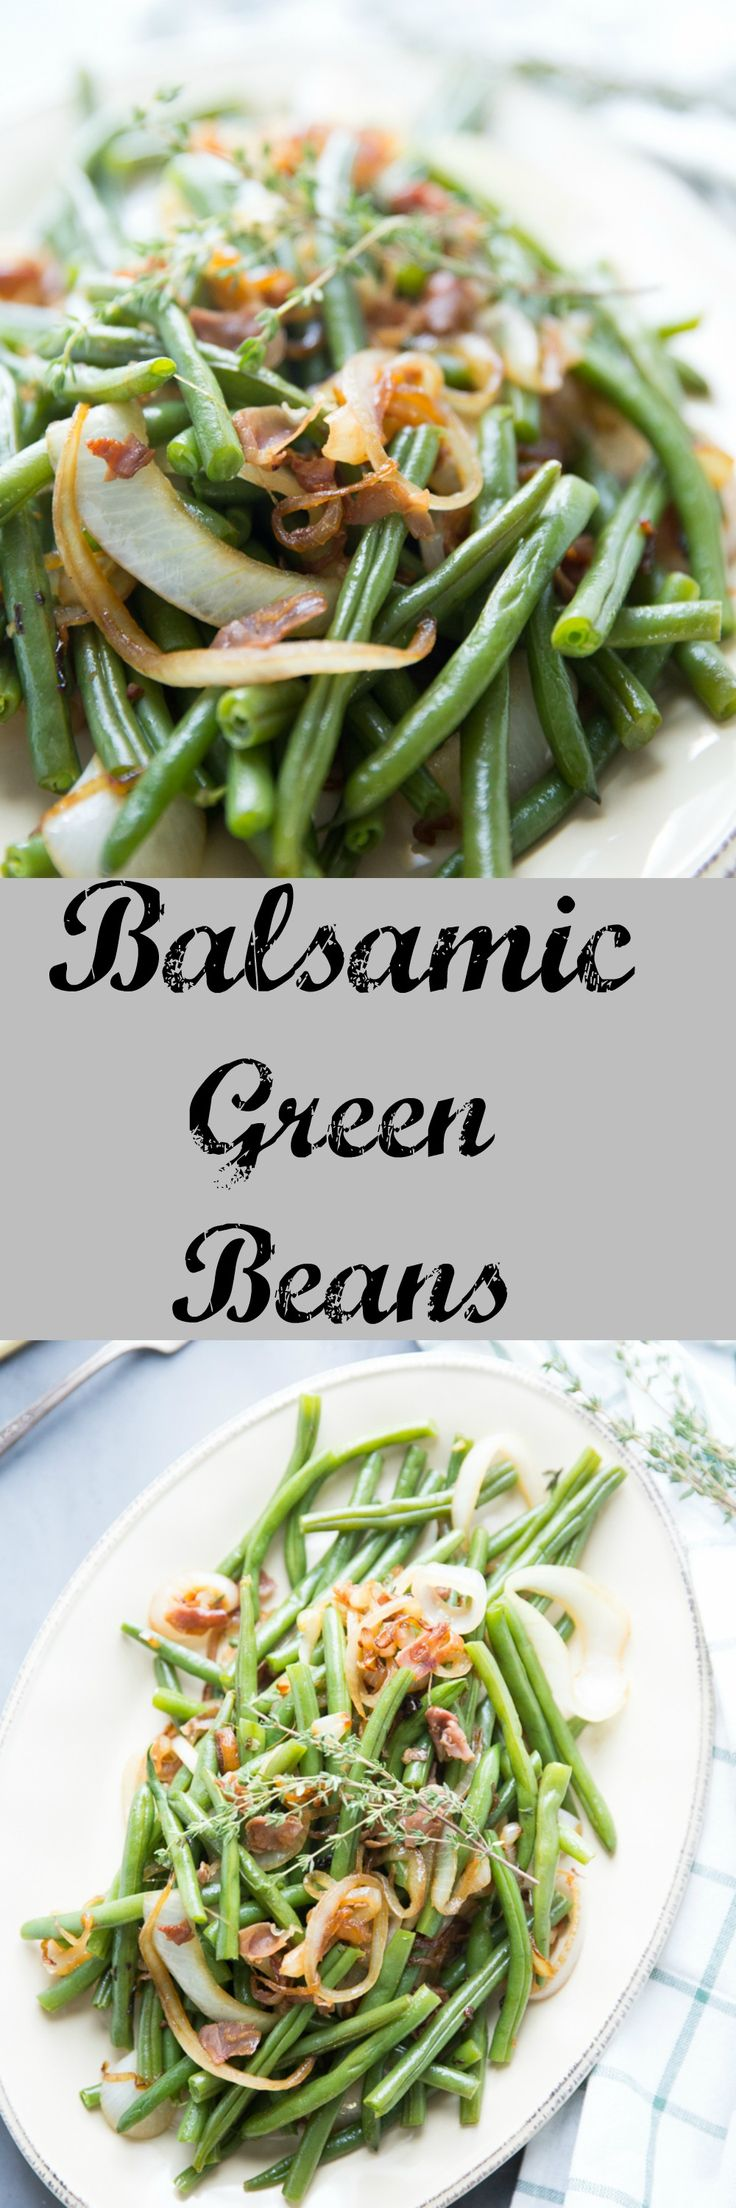 resh green beans are key to this easy balsamic green beans recipe!    Caramelized onions and pancetta brings out the rich, tangy taste of the balsamic vinegar. via @Lemonsforlulu